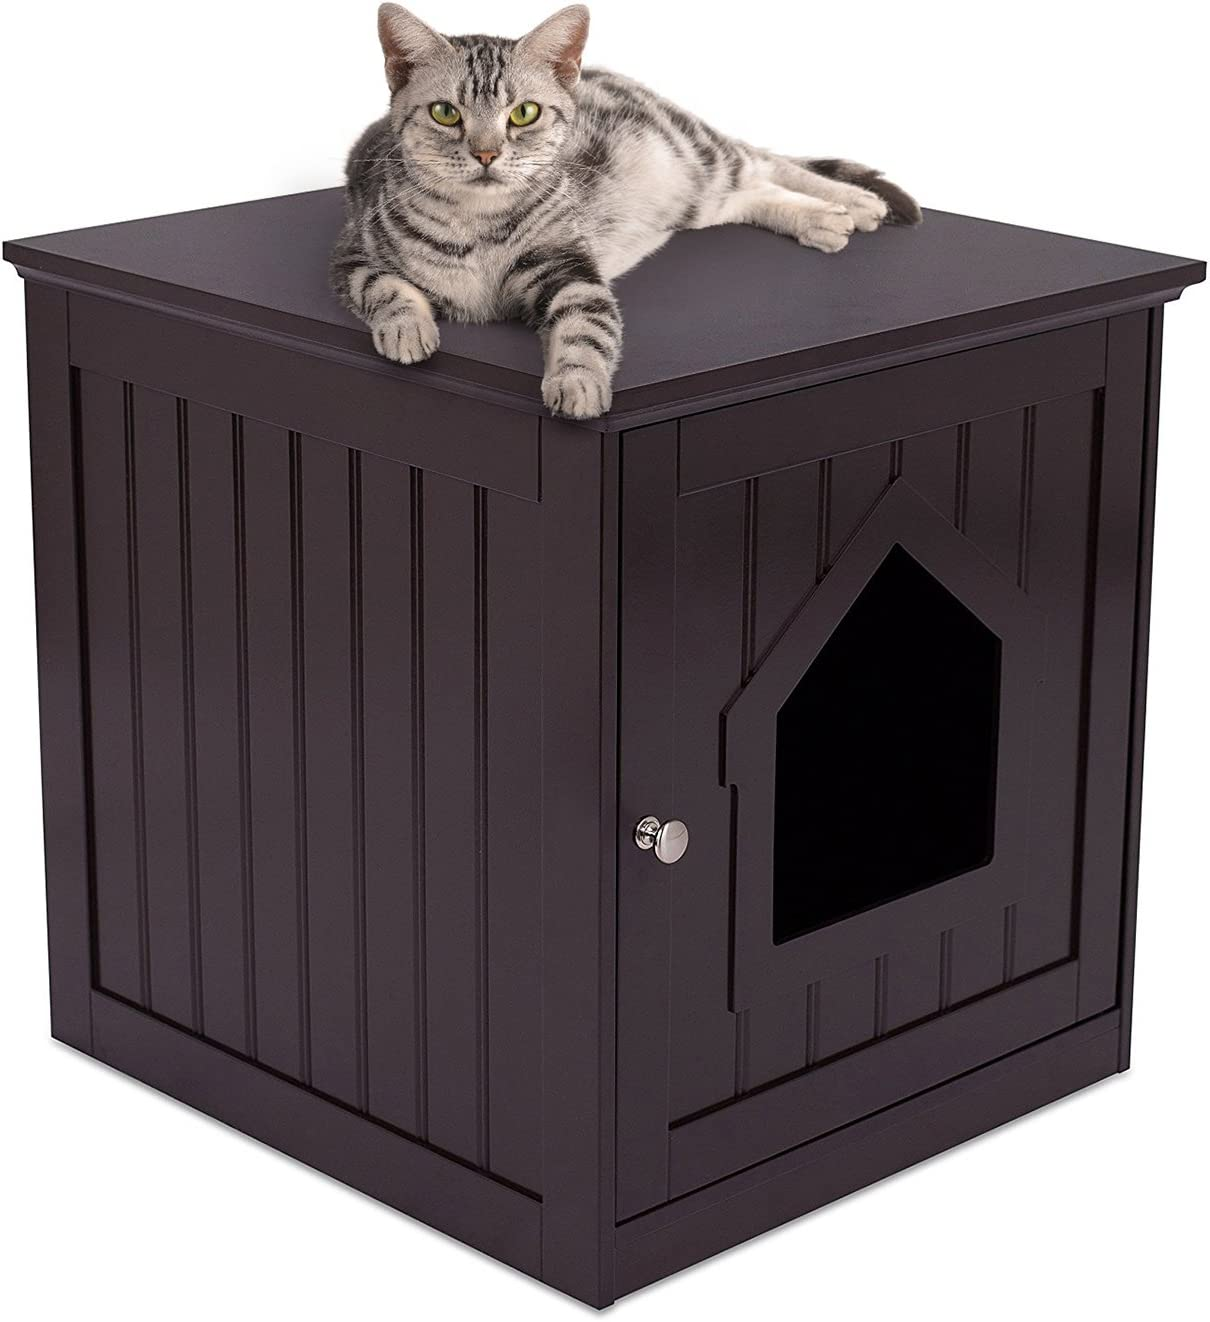 BIRDROCK HOME Decorative Cat House & Side Table - Cat Home Nightstand - Indoor Pet Crate - Litter Box Enclosure - Hooded Hidden Pet Box - Cats Furniture Cabinet - Kitty Washroom